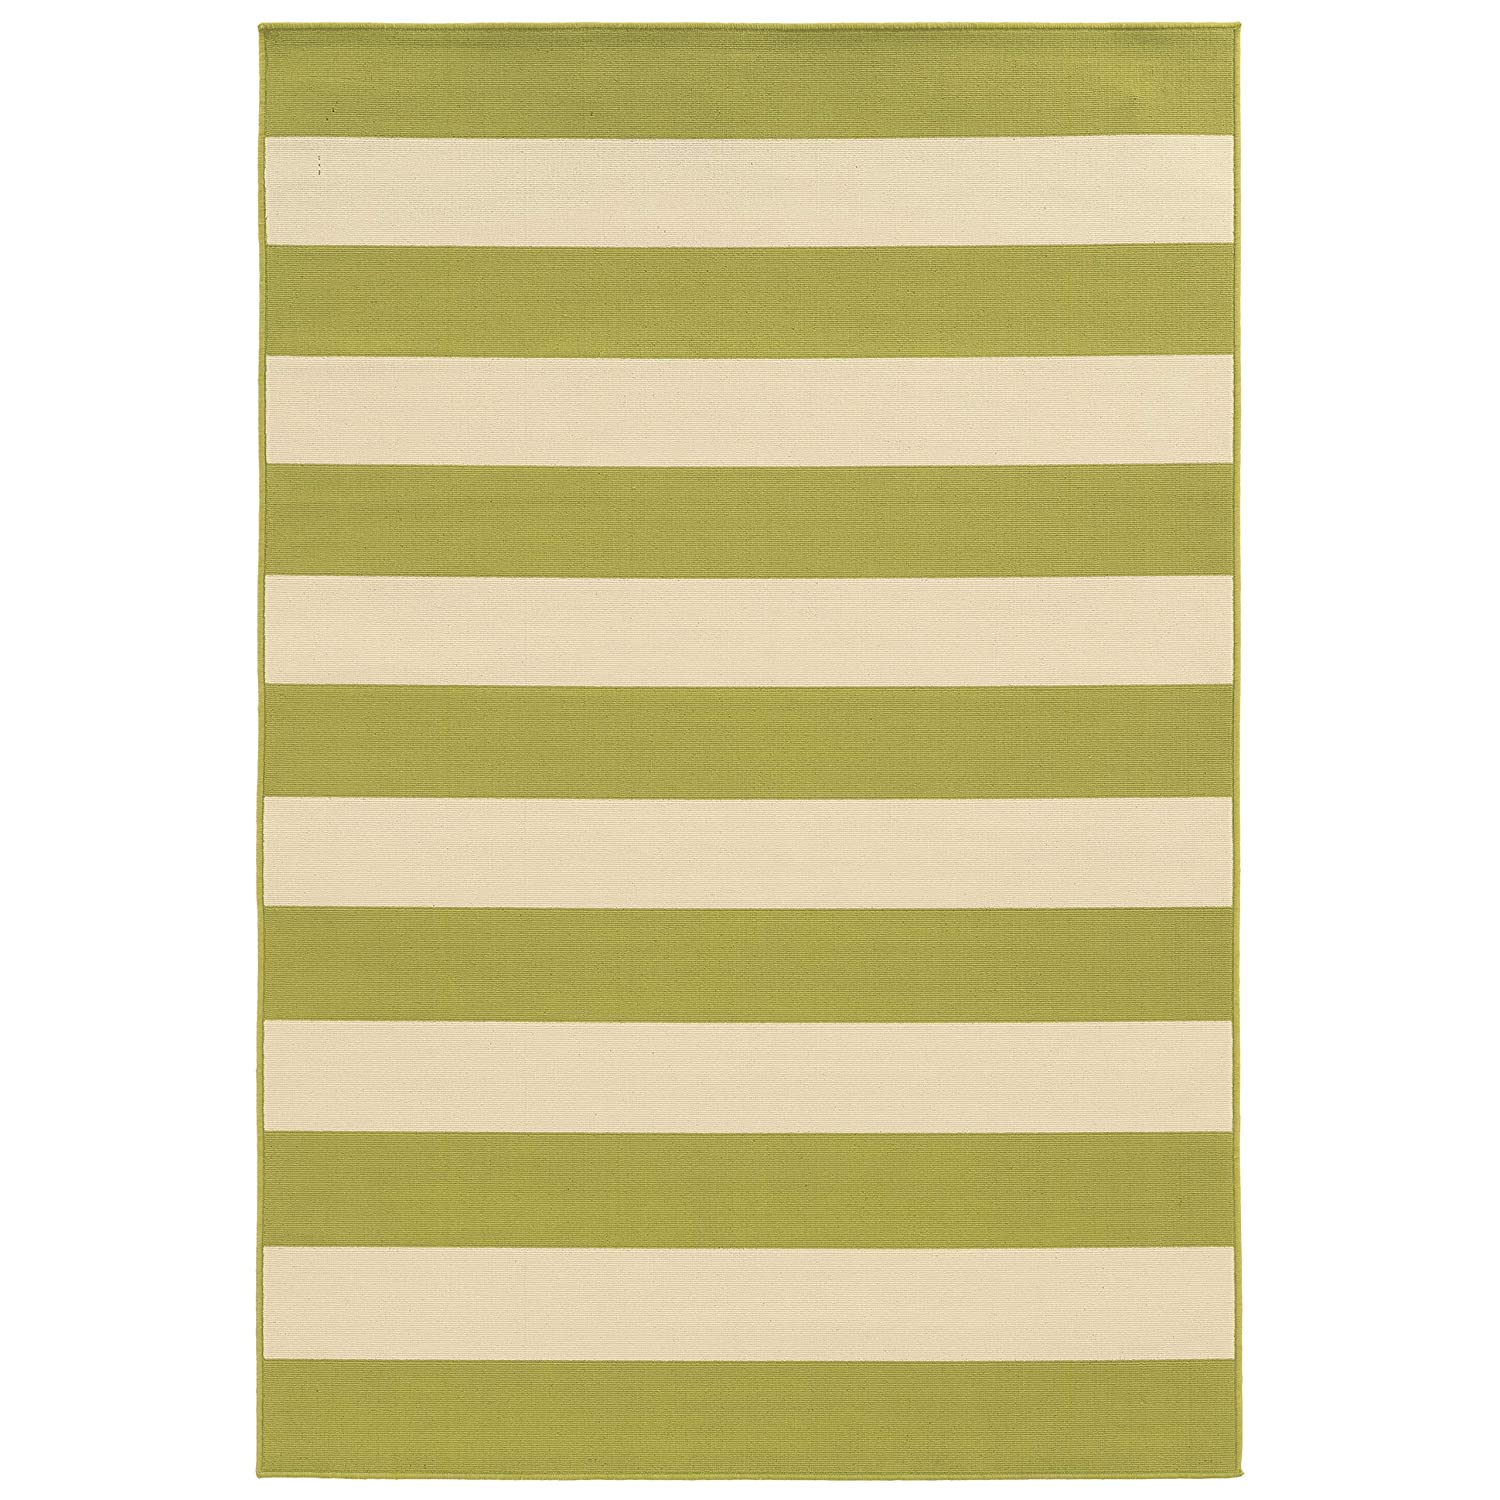 Christopher Knight Home CK-E8674 Lacosta Stripe Indoor/Outdoor Area Rug 7ft 10in X 10ft 10in Green,Ivory